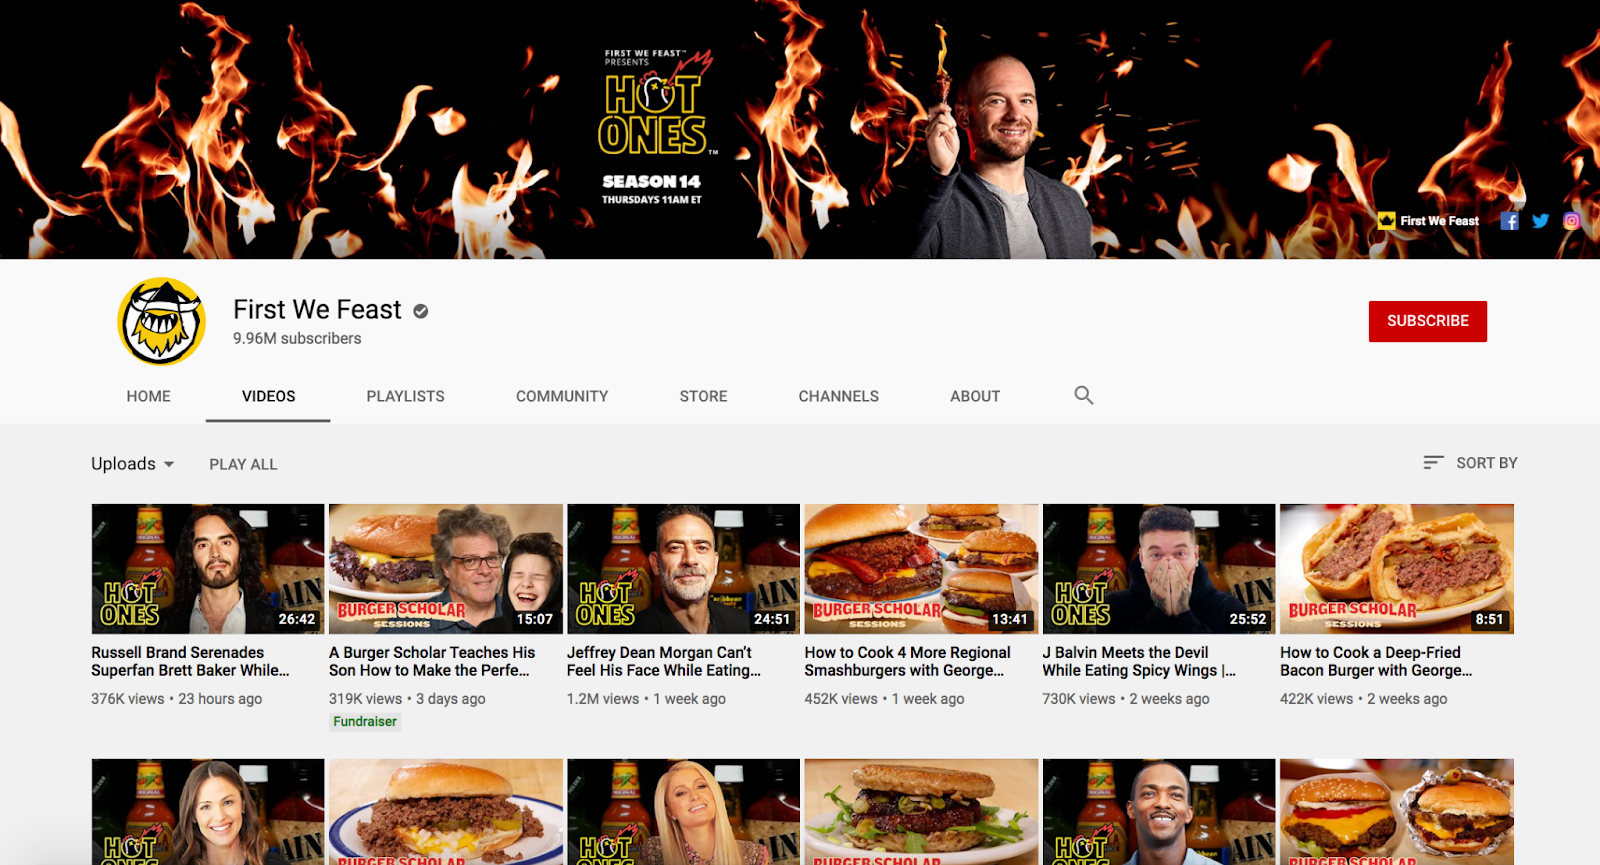 First We Feast YouTube Channel